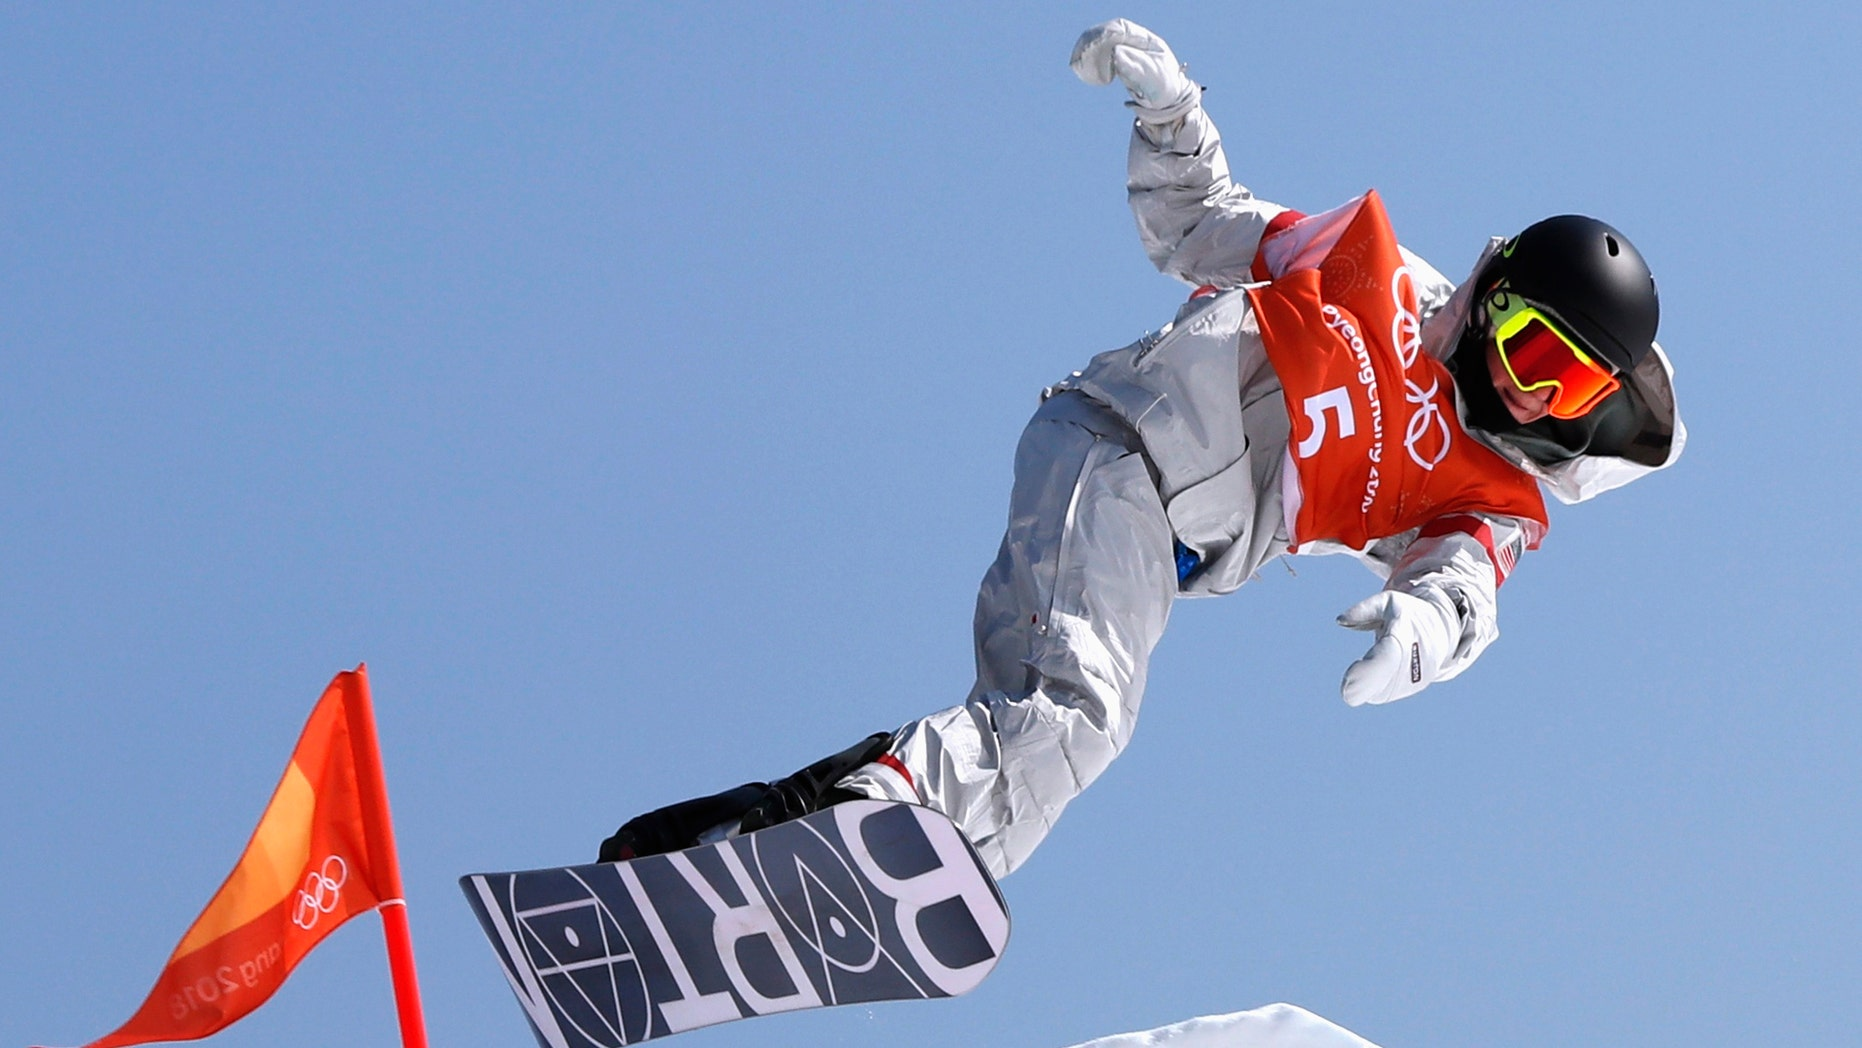 File photo - Snowboarding - Pyeongchang 2018 Winter Olympics February 8, 2018 - An unidentified athlete trains. (REUTERS/Issei Kato)